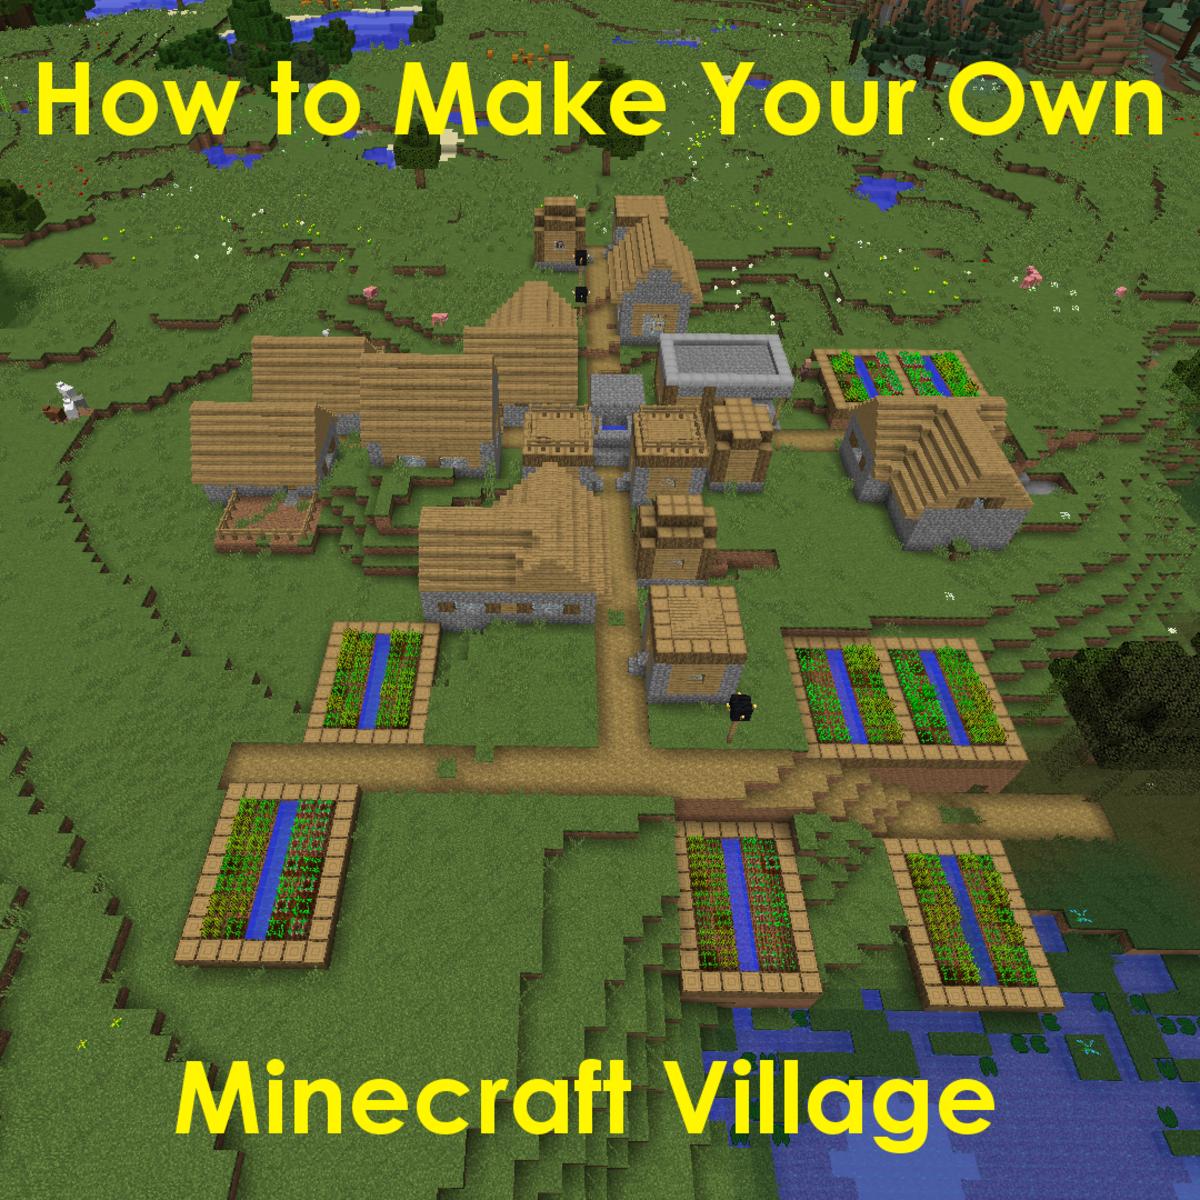 Learn how to make a village by using doors, zombie villagers or transporting villagers!